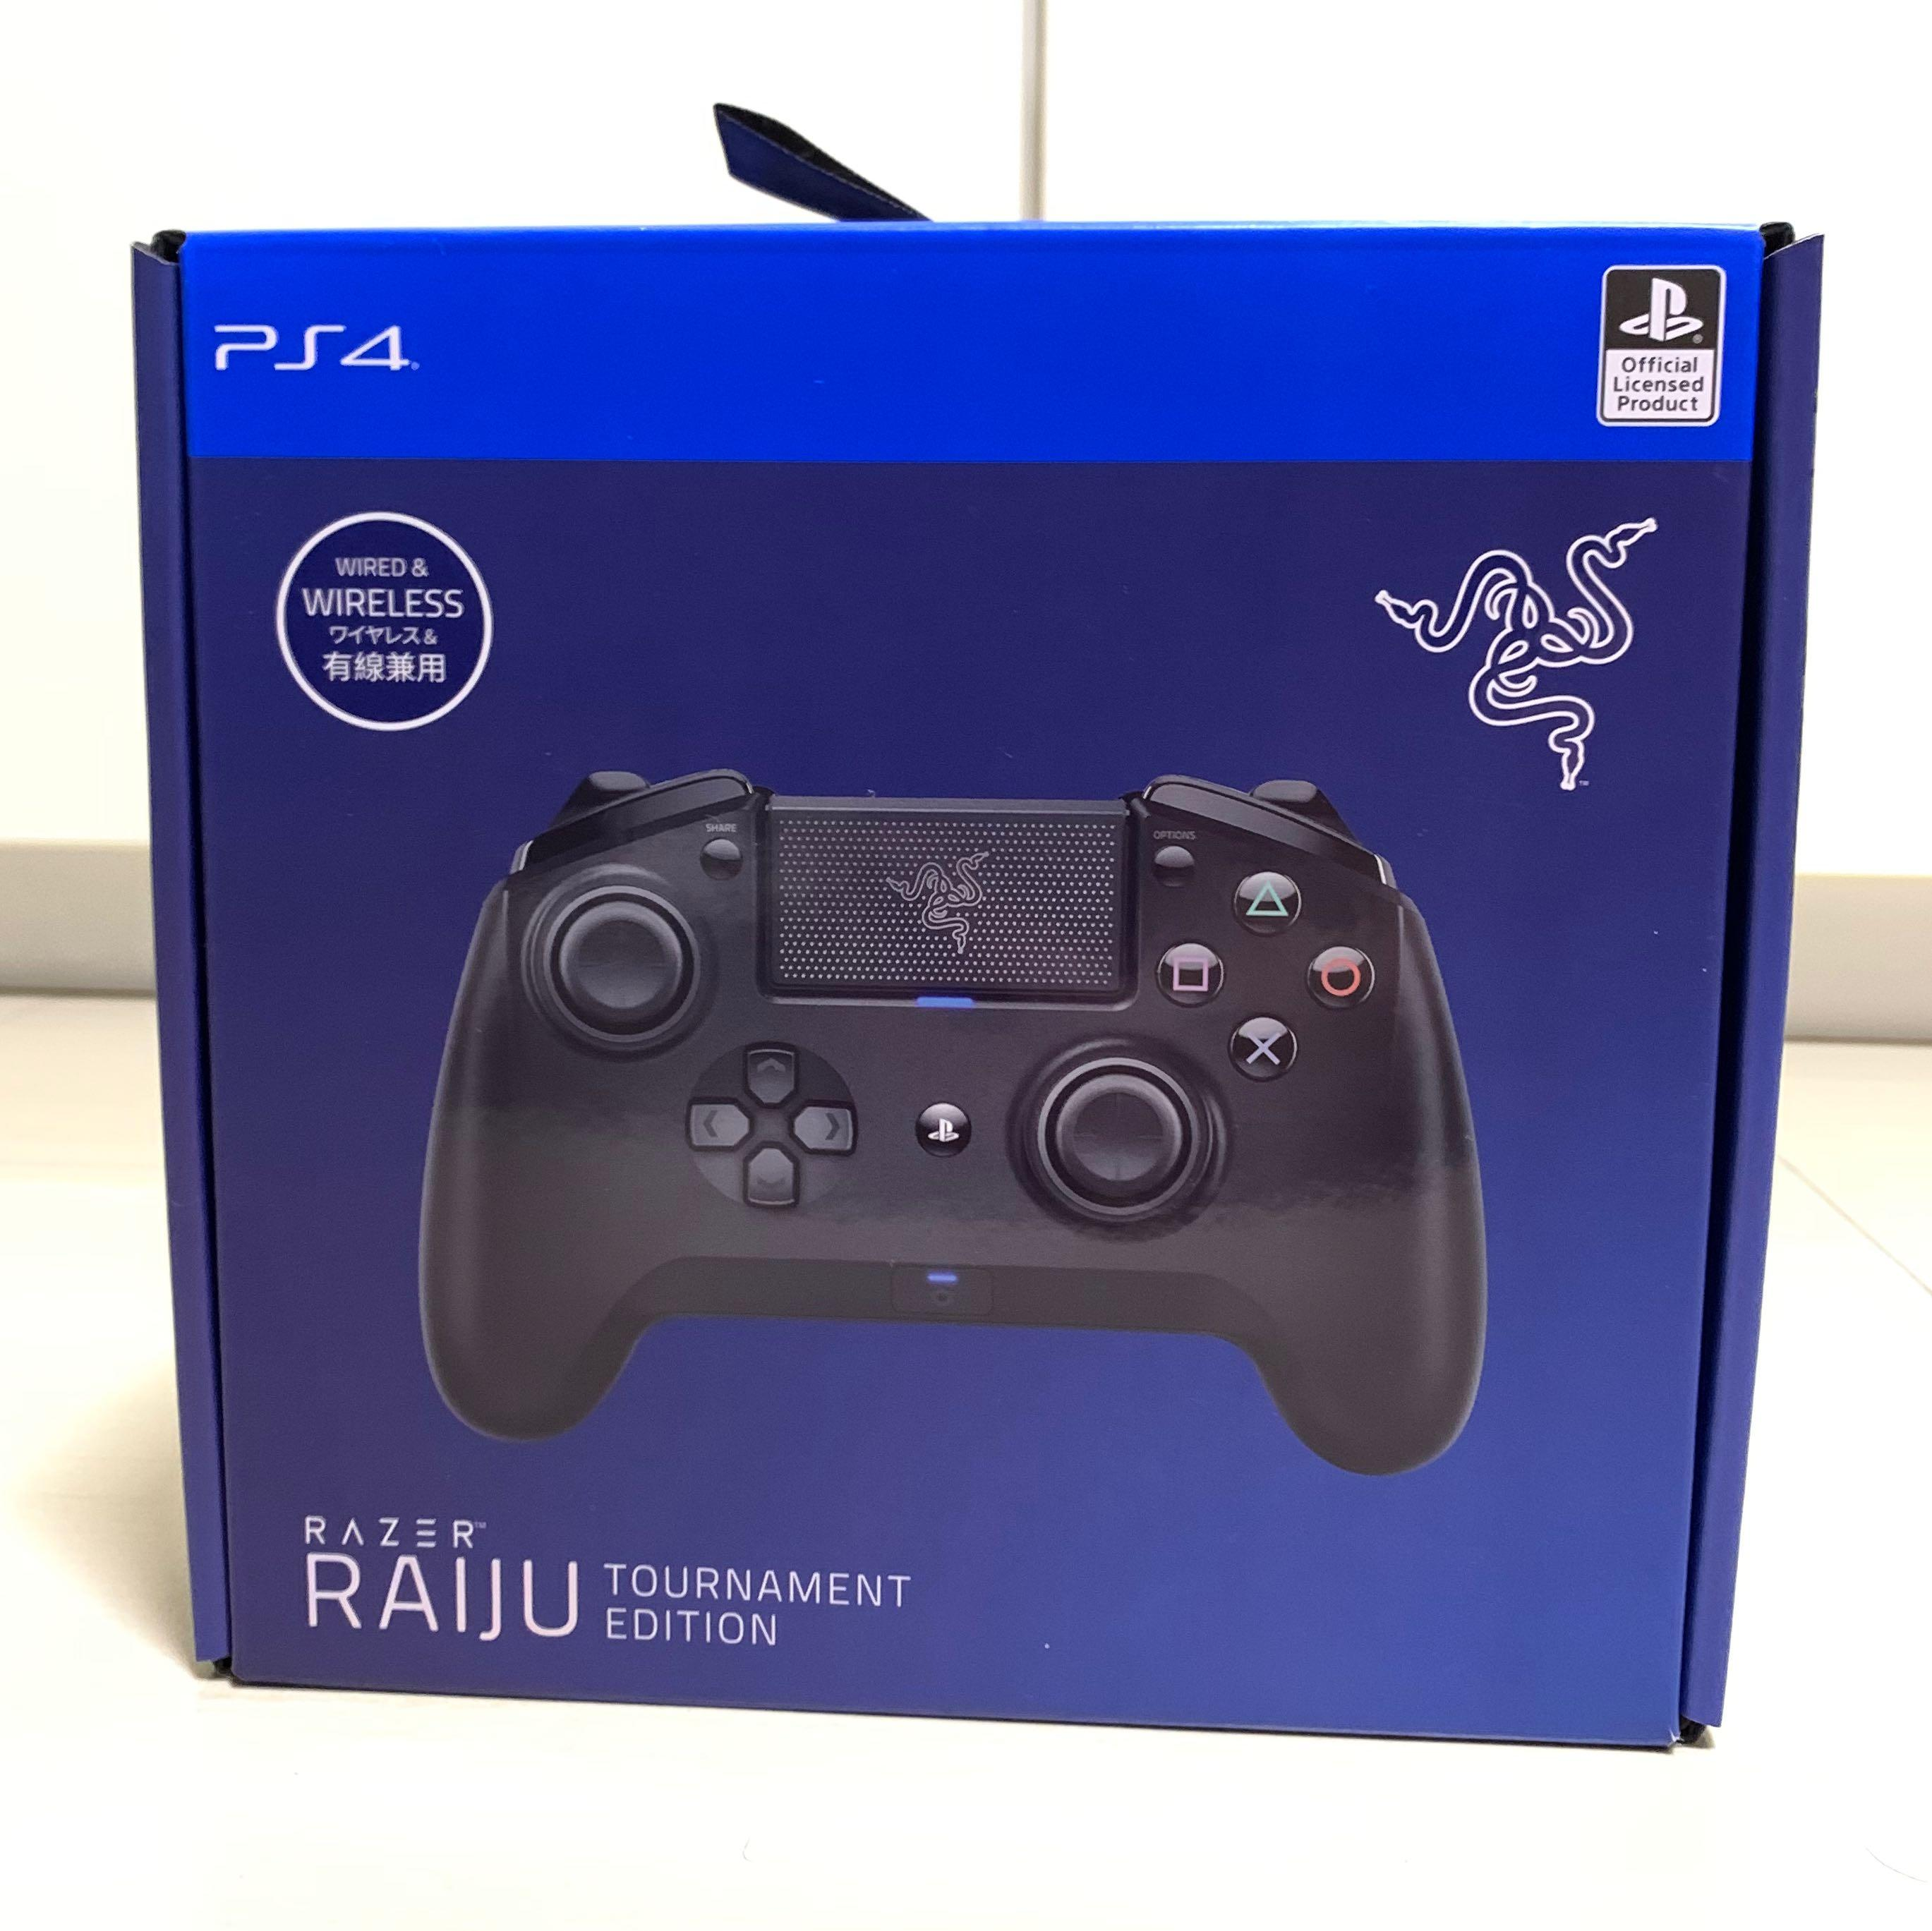 Razer Raiju Te Ps4 Pc Controller Toys Games Video Gaming Gaming Accessories On Carousell The razer raiju mobile is primarily based on its cousin from the same family, the raiju tournament edition made for playstation 4 similar to the raiju te and ultimate, it also has the rectangular box. carousell